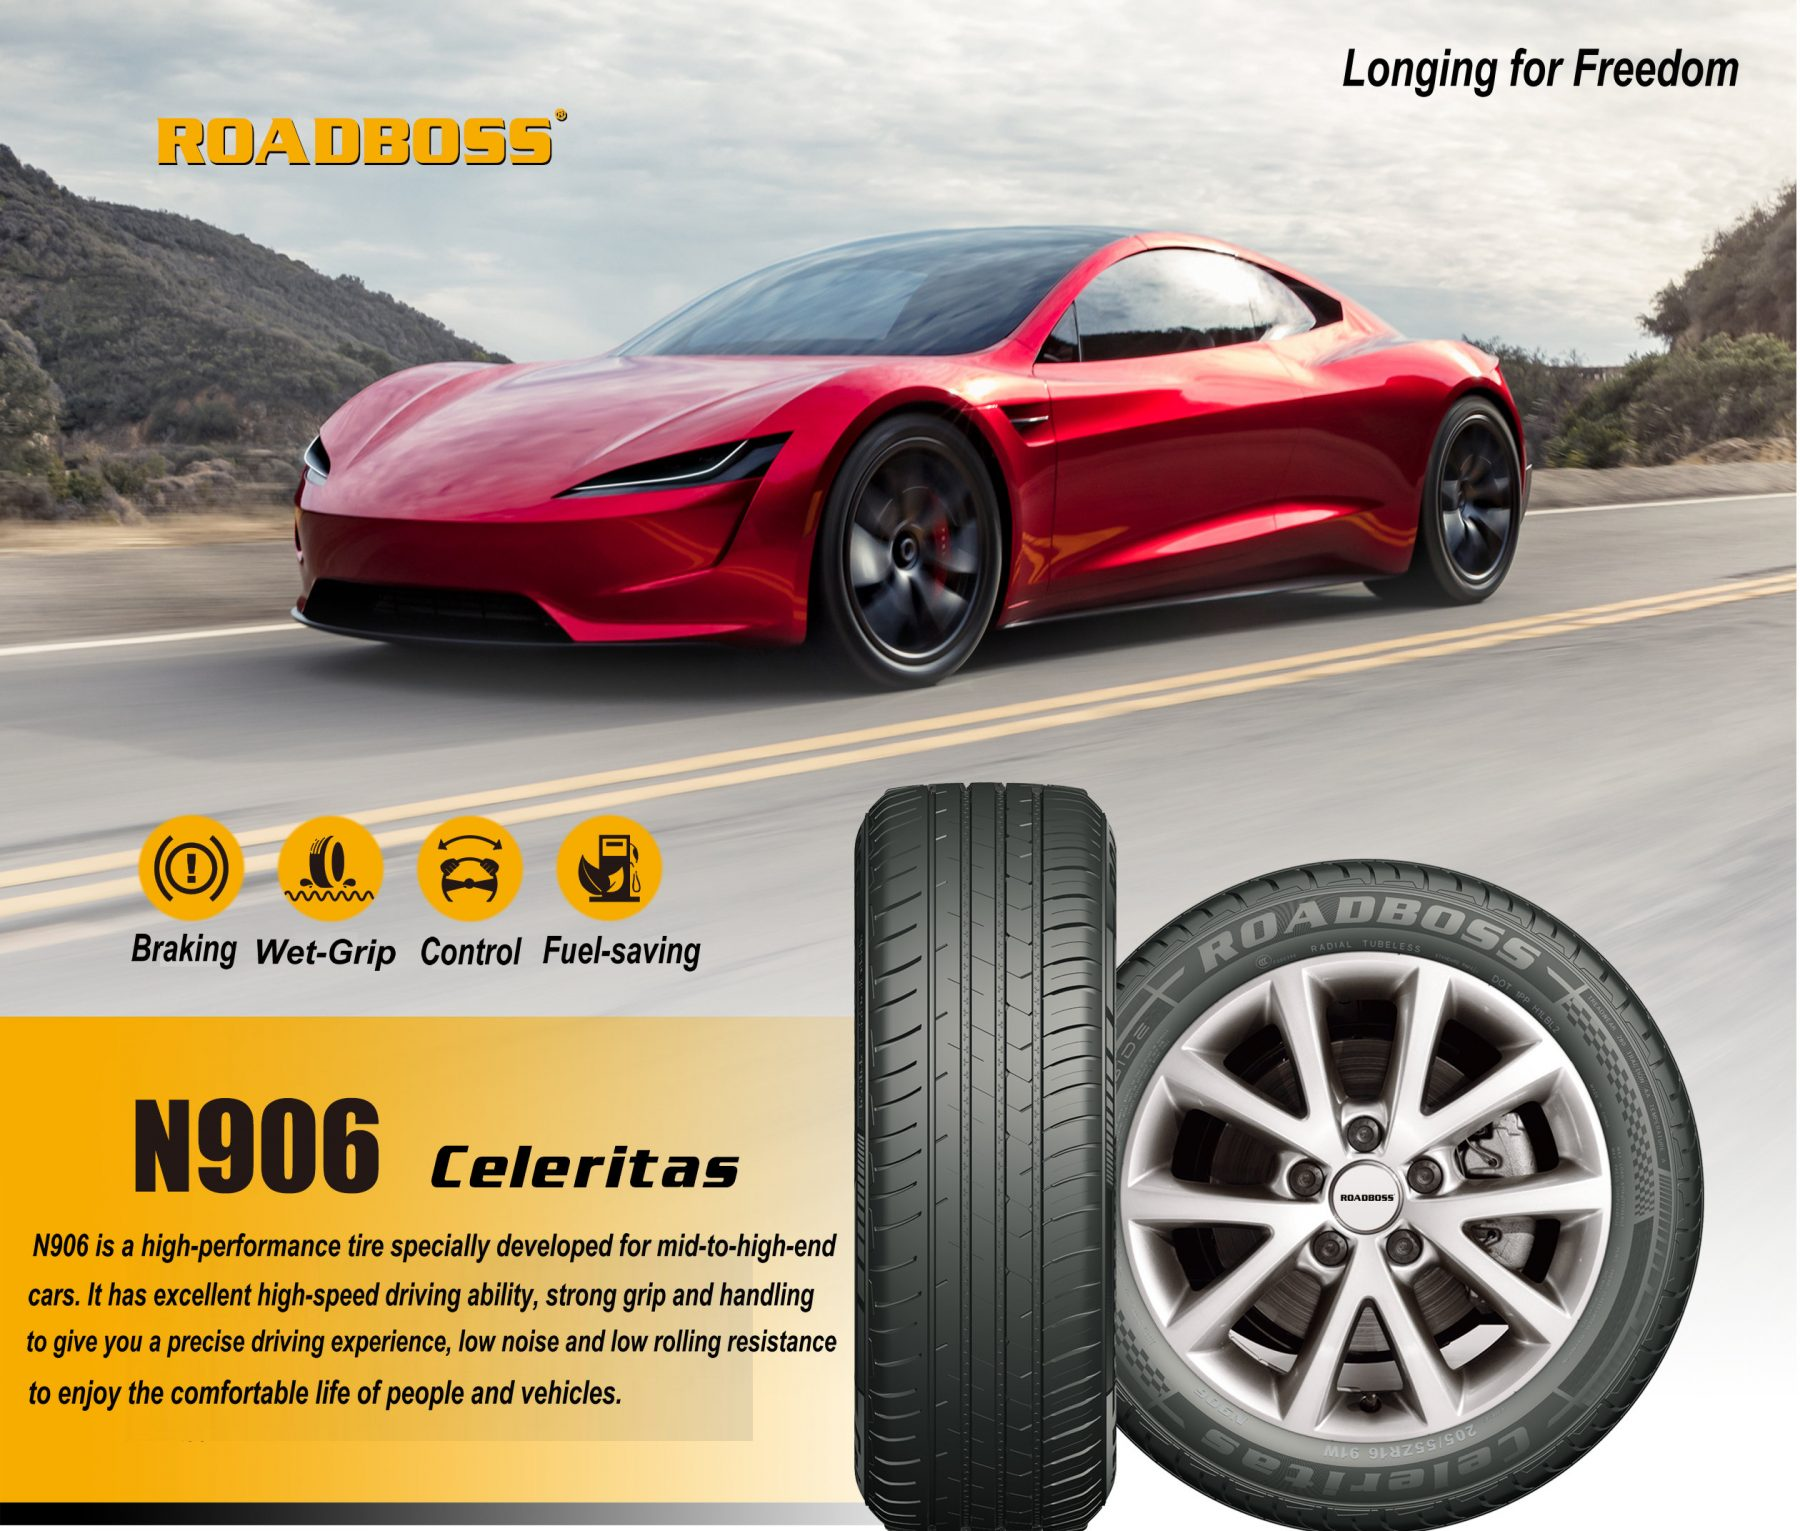 Roadboss Tires Dubai UAE